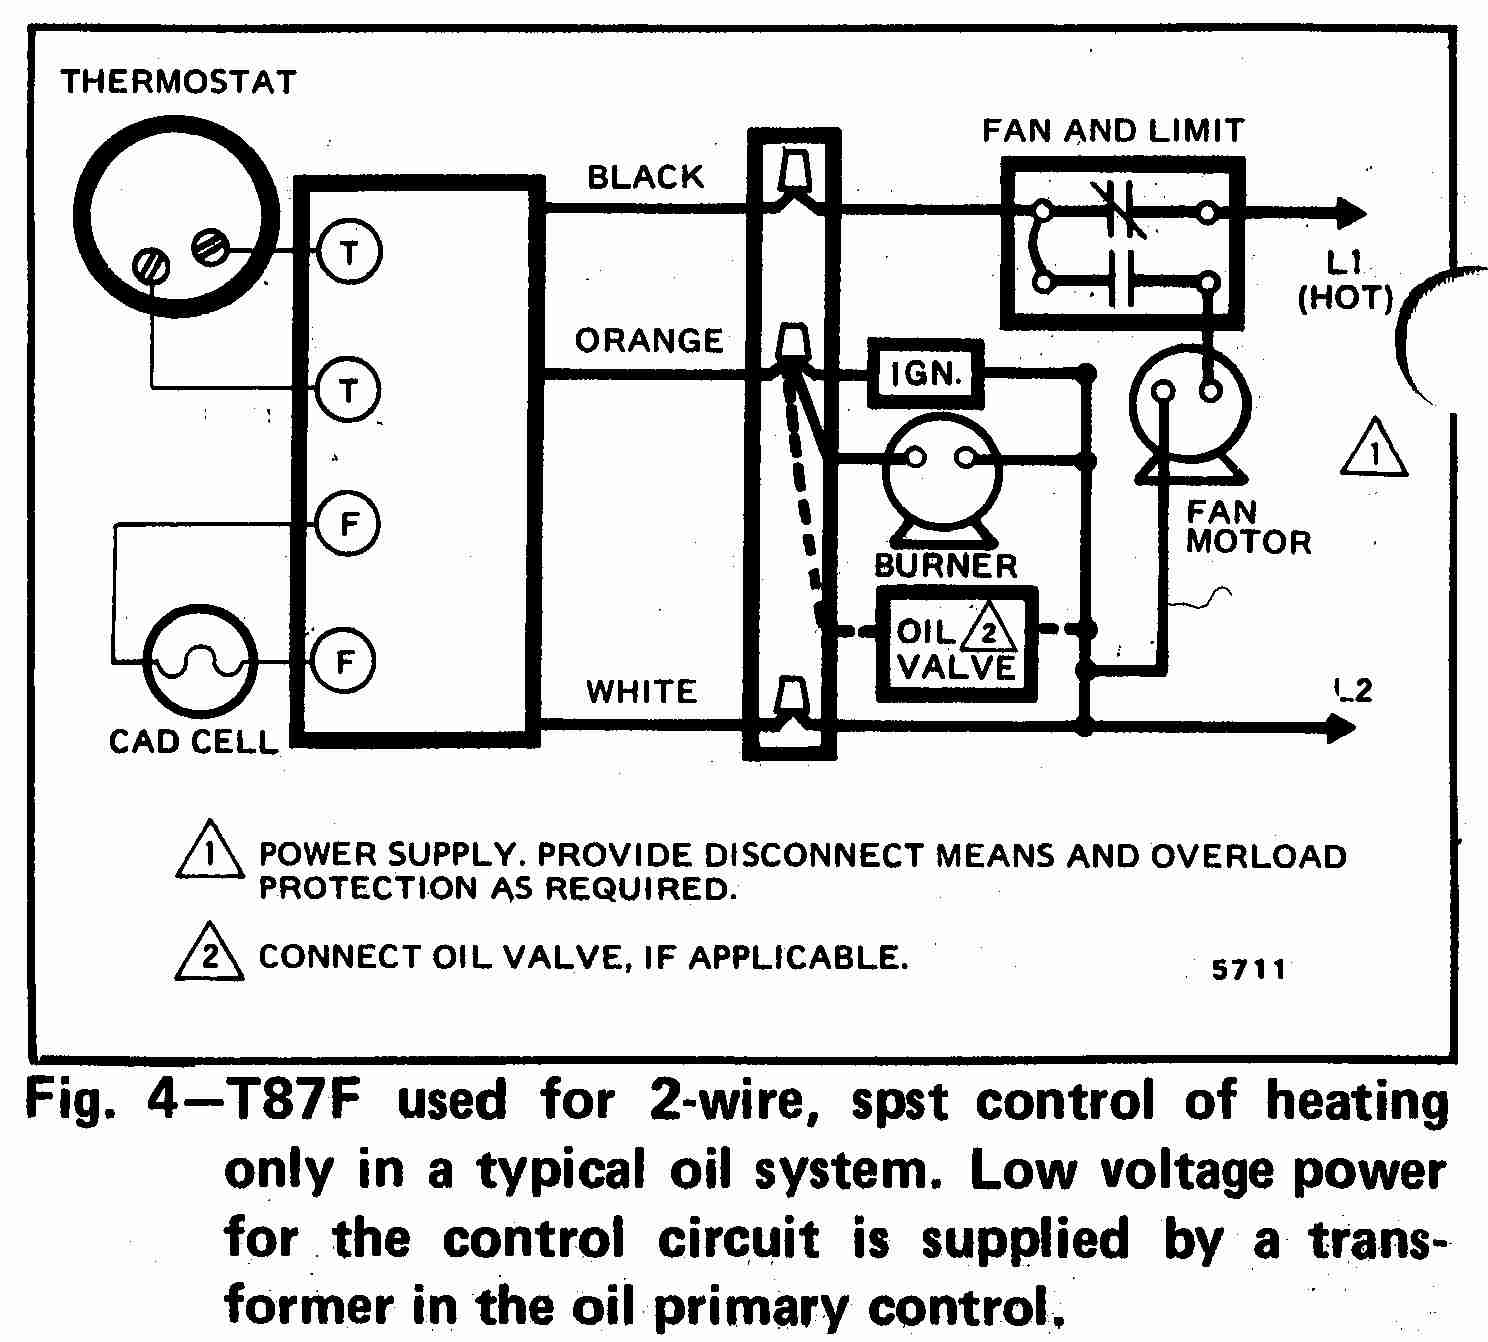 Ac Disconnect Wiring Diagram Free Download Schematic Diy Dc Motor Hvac Diagrams Rh Boltsoft Net Spa Panel